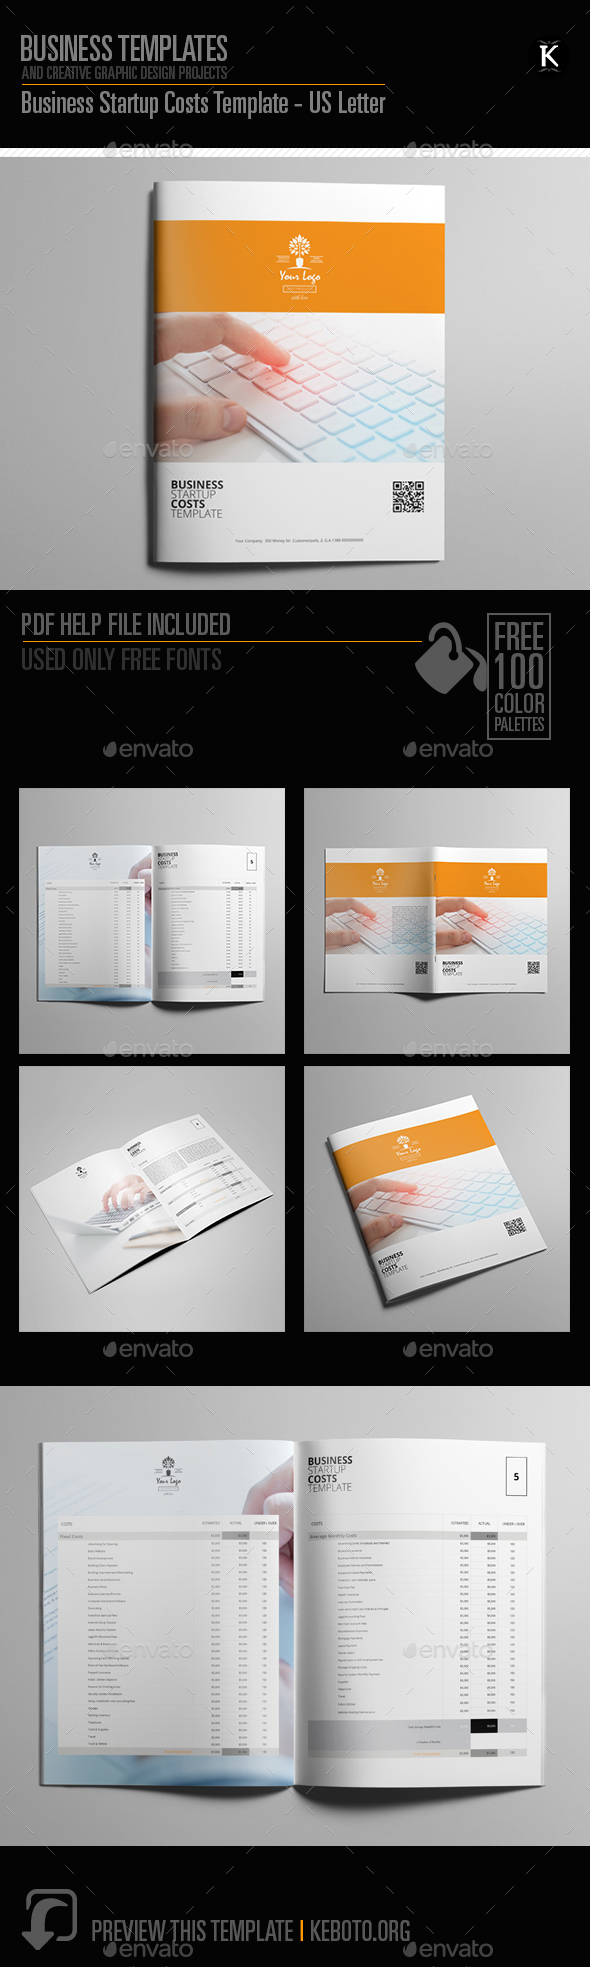 Business Startup Costs Template - US Letter - Miscellaneous Print Templates